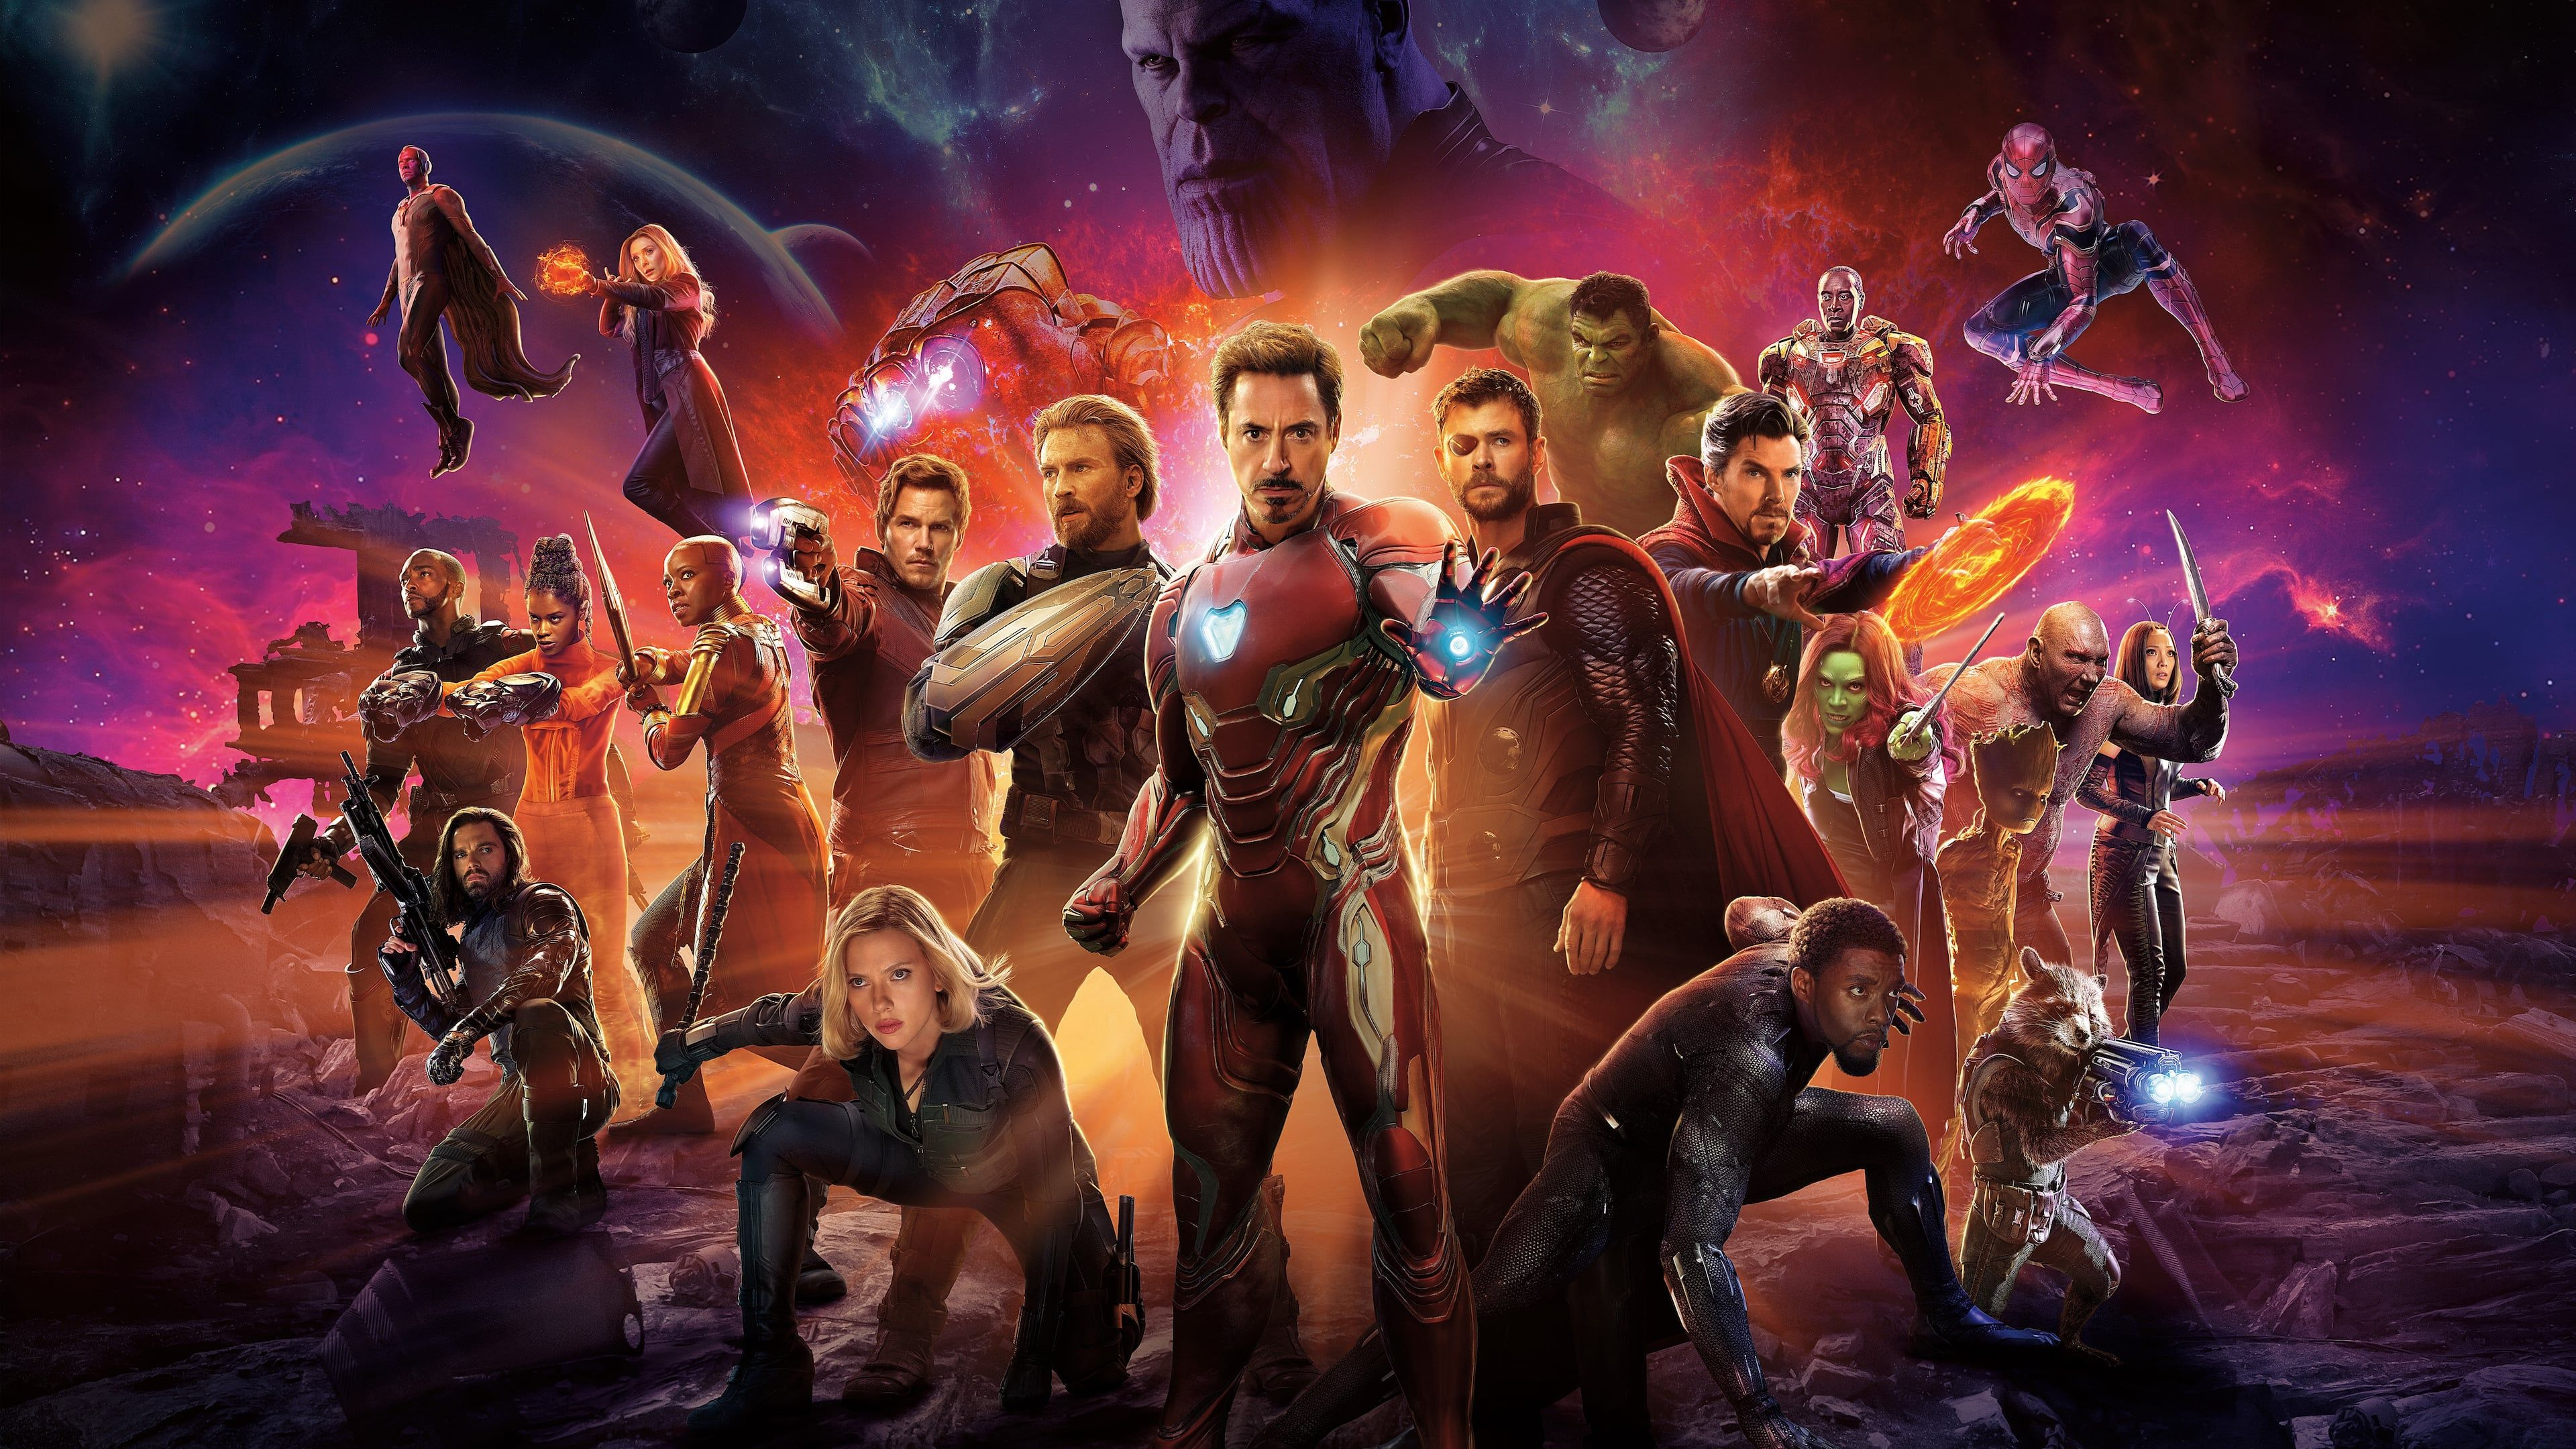 Watch Avengers Infinity War In Hindi Dubbed Online Free Movie4u Marvel Cinematic Avengers Avengers Pictures